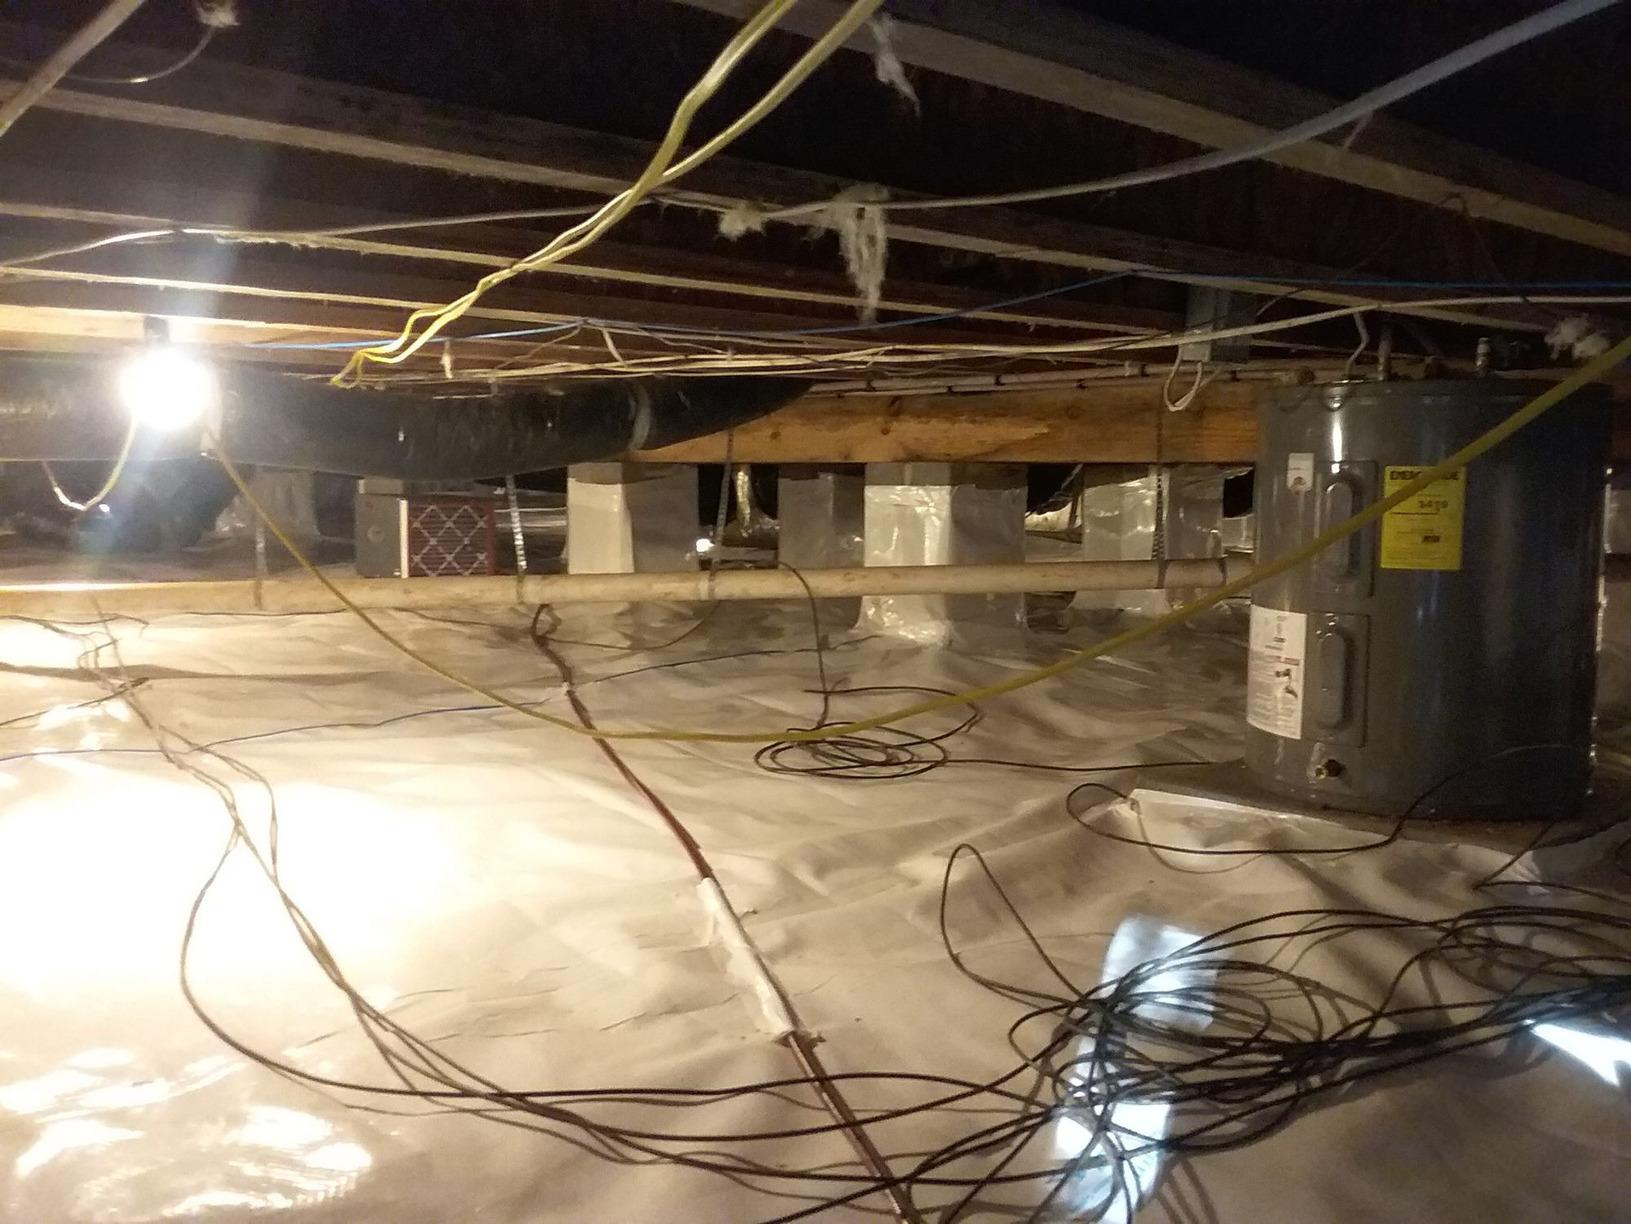 Crawl Space Encapsulation in Timberlake, NC - After Photo